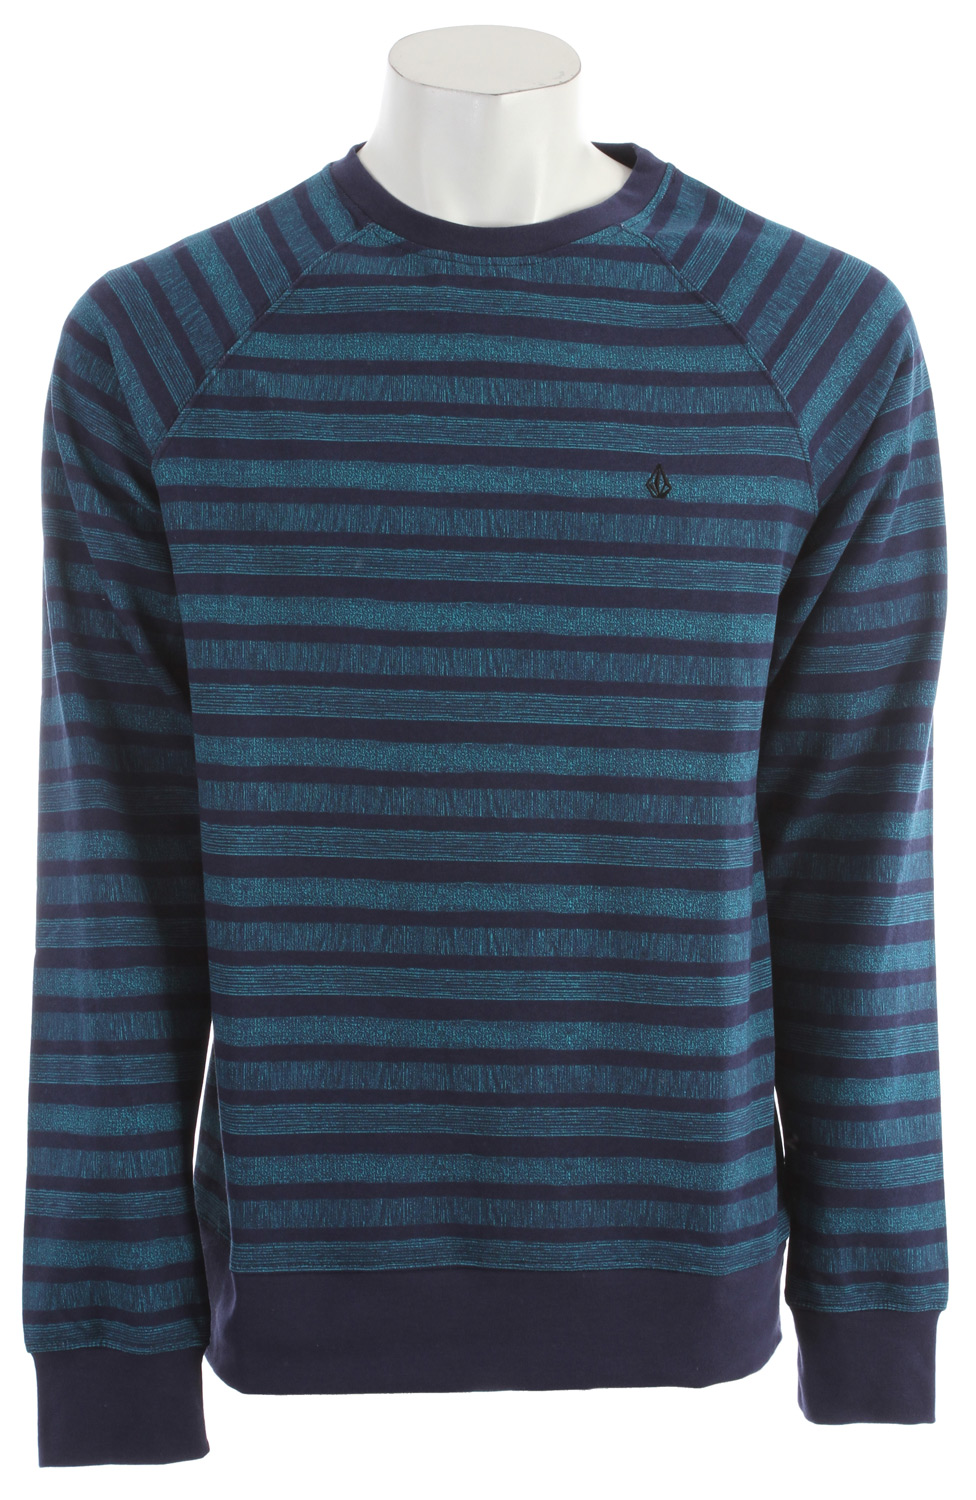 Surf You are an active guy with style, so you wear the Volcom Speckle Stripe Sweatshirt for Men, helping you look good and move freely throughout your day. The basic fit on this crew fleece is printed with symmetrical stripes, and has flattering raglan sleeves, giving flair to an already classic look. This Volcom sweatshirt is also already pre shrunk, so you know you are getting a good fit. Not only is this sweatshirt aesthetically appealing, it is also comfortable and warm, with its 60% Cotton and 40% Poly Fleece blended fabric.Key Features of the Volcom Speckle Stripe Sweatshirt:  Basic fit crew fleece  Printed stripes  Raglan Sleeves  Pre Shrunk  Core Label package  60% Cotton / 40% Poly Fleece, 280g - $32.95